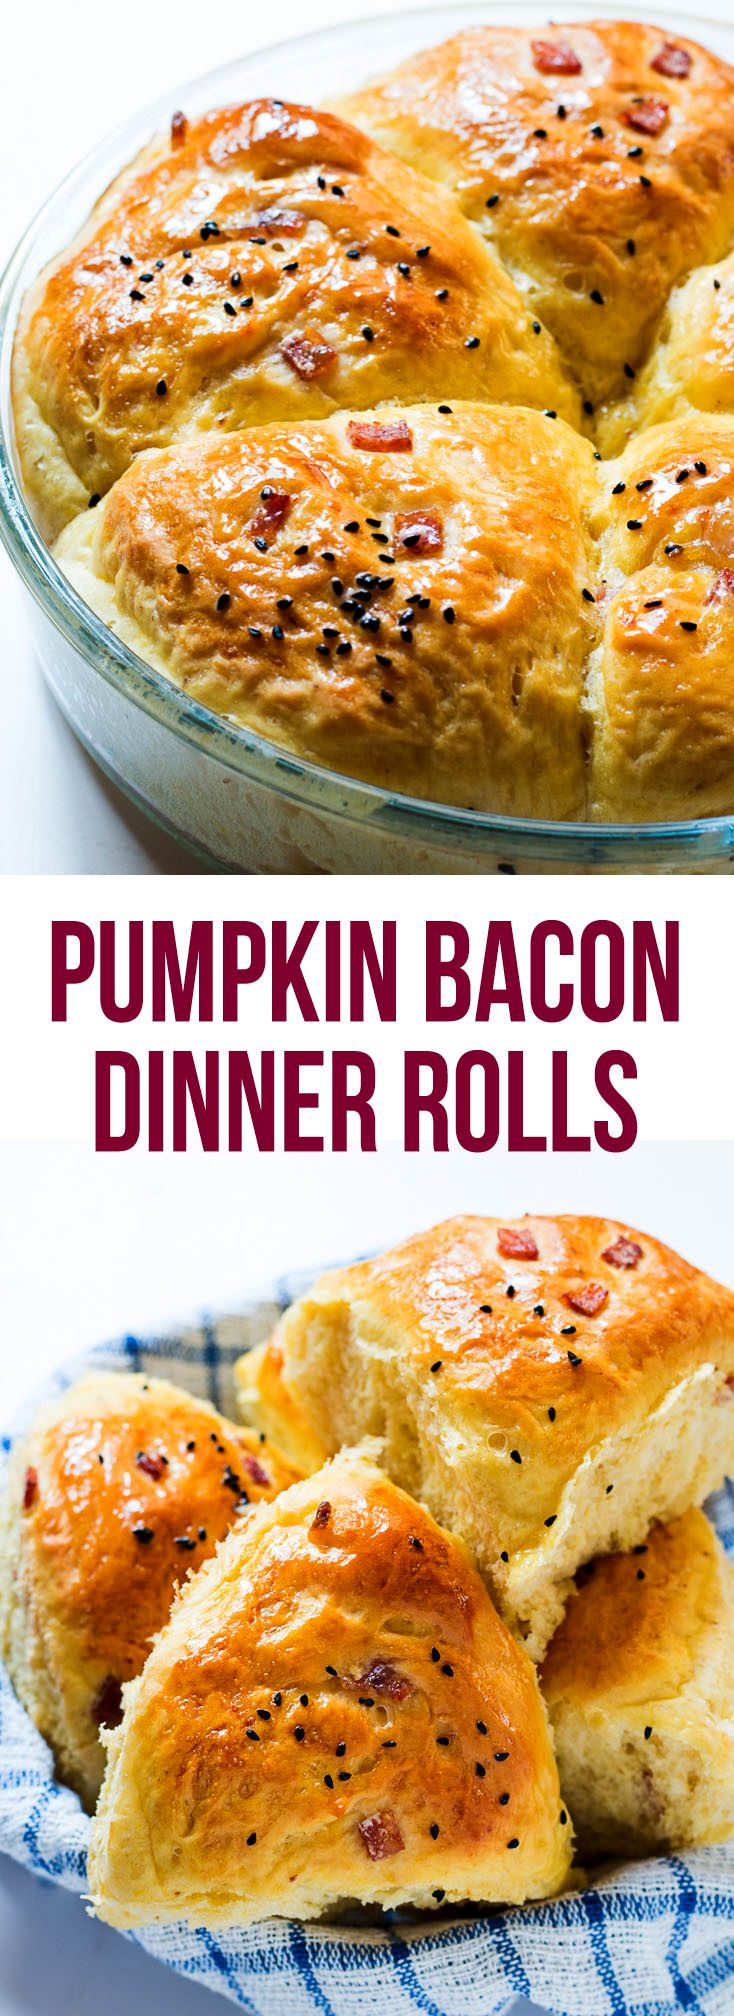 Who doesn't love freshly baked DINNER ROLLS? And when they are the SOFTEST PUMPKIN BACON DINNER ROLLS you have ever made, nobody will be able to resist!